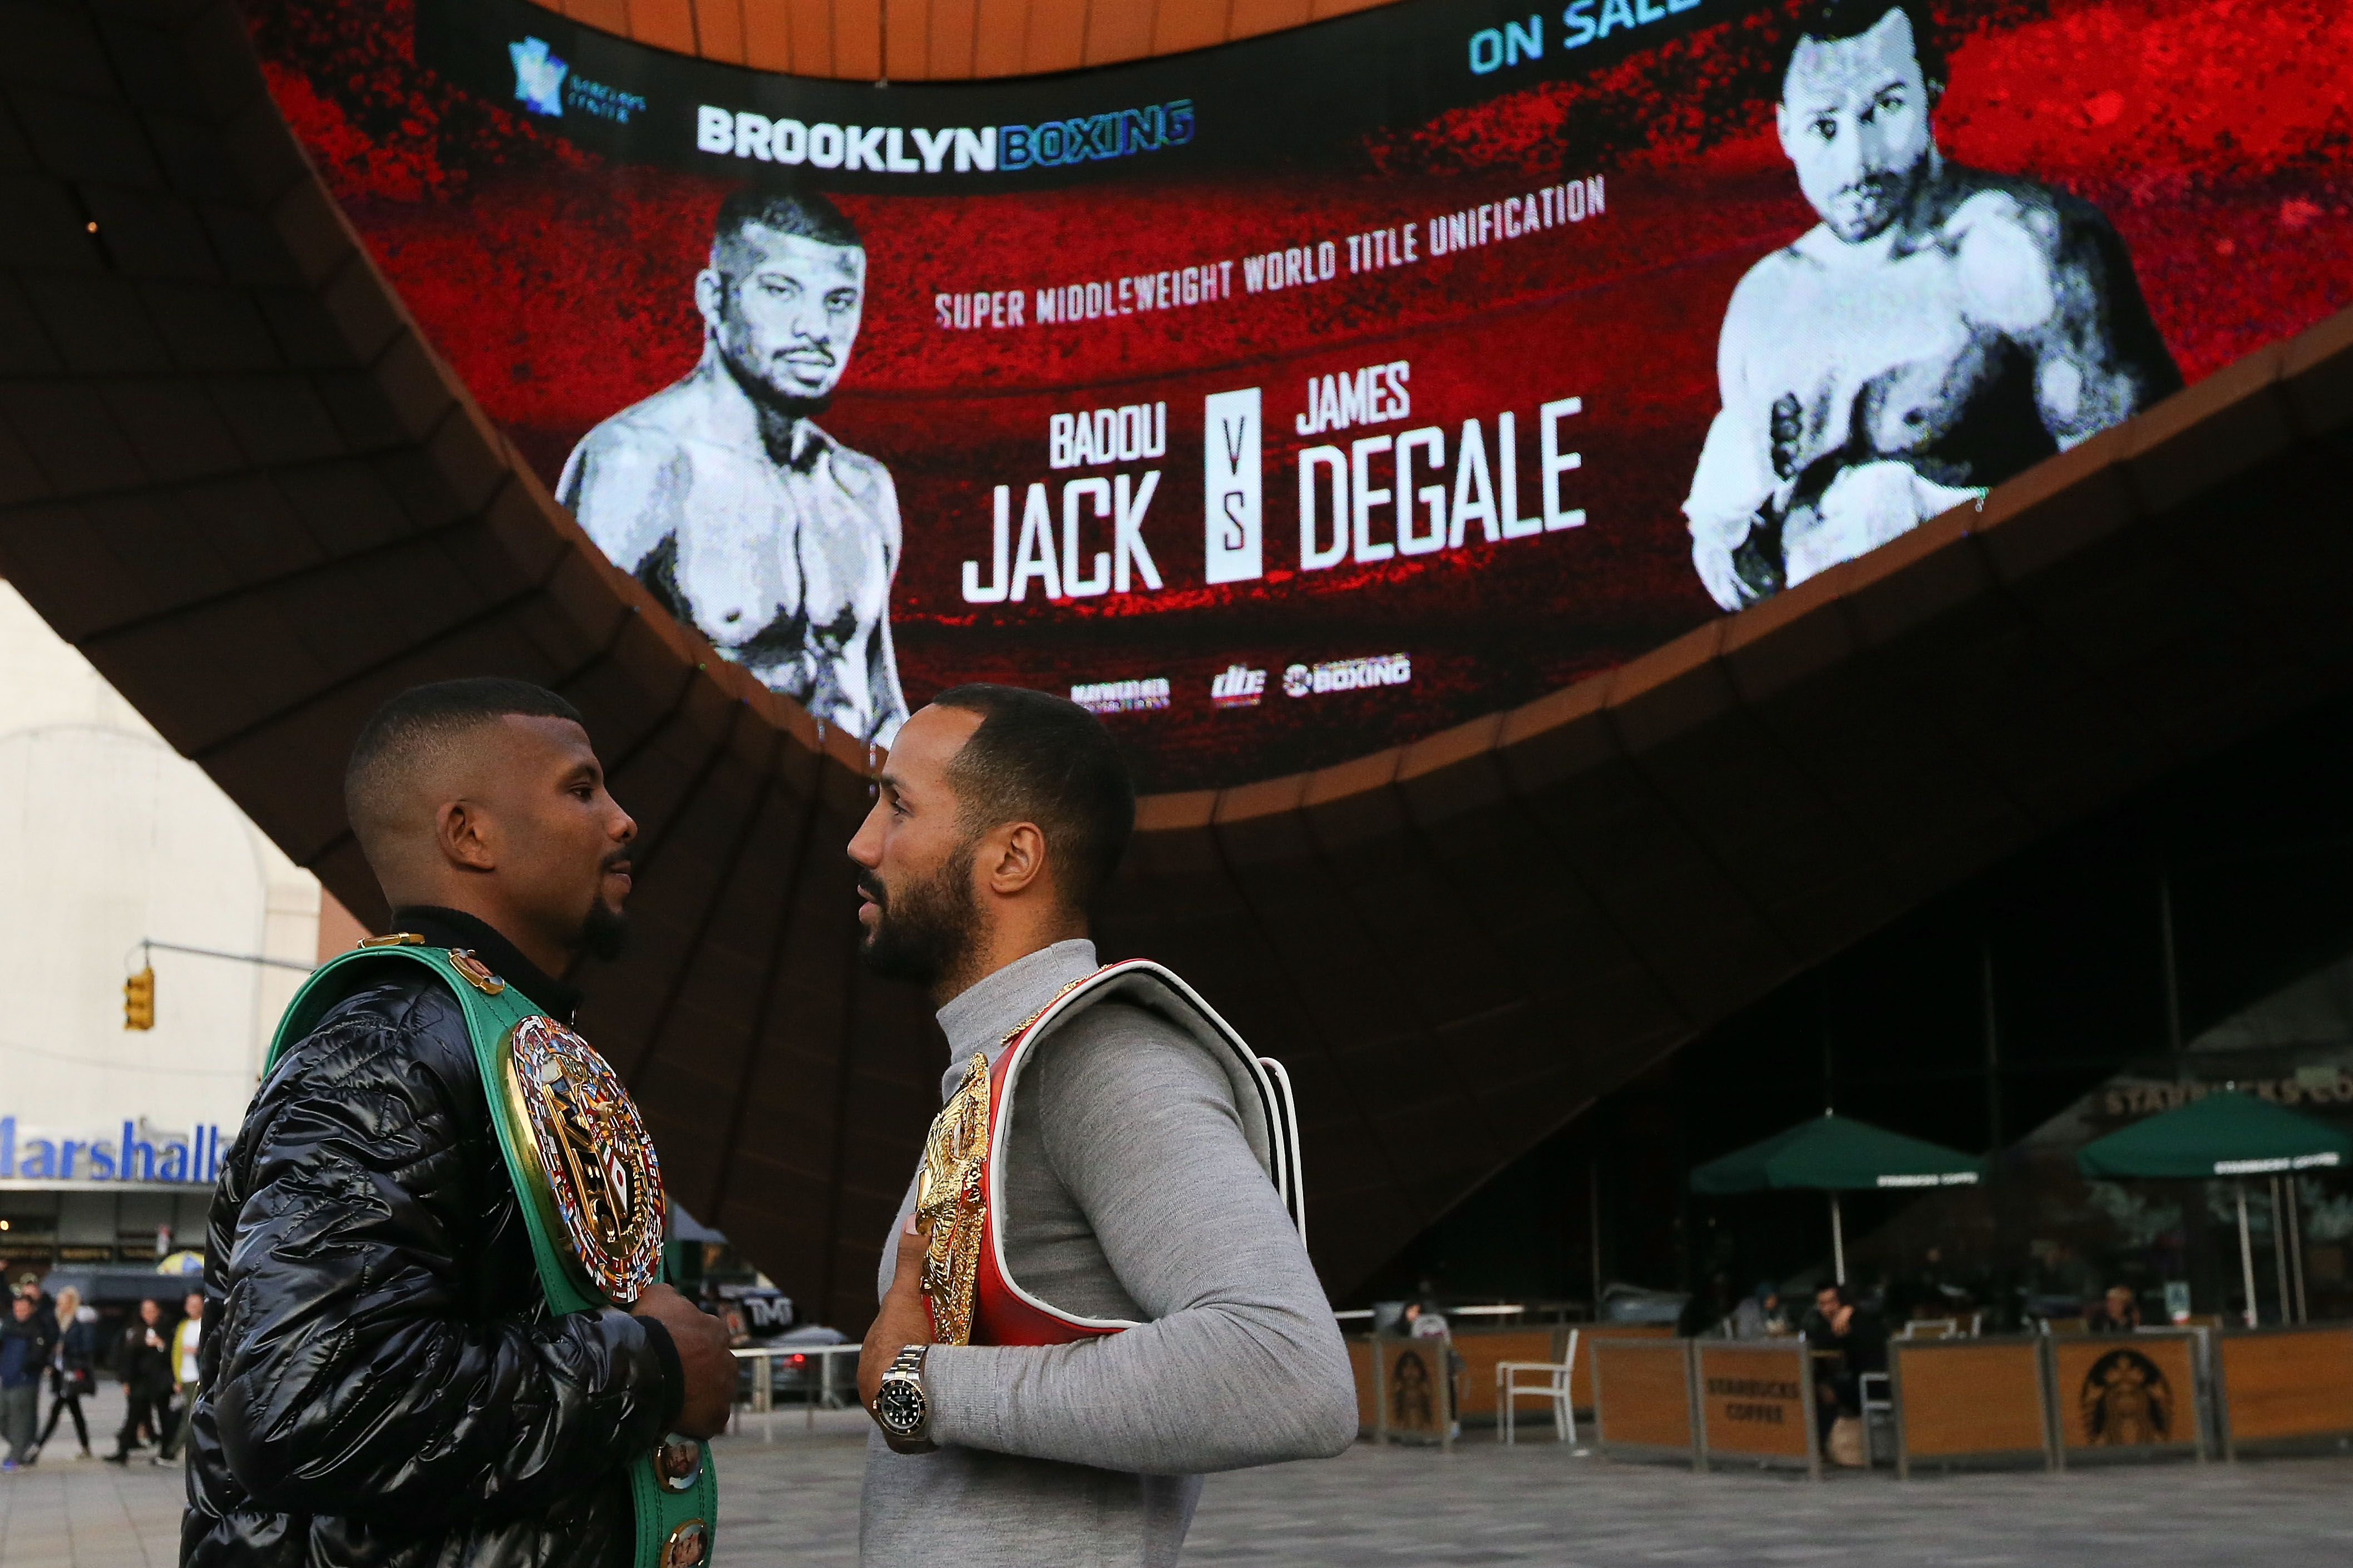 James DeGale vs Badou Jack date, fight time, undercard, TV channel and odds